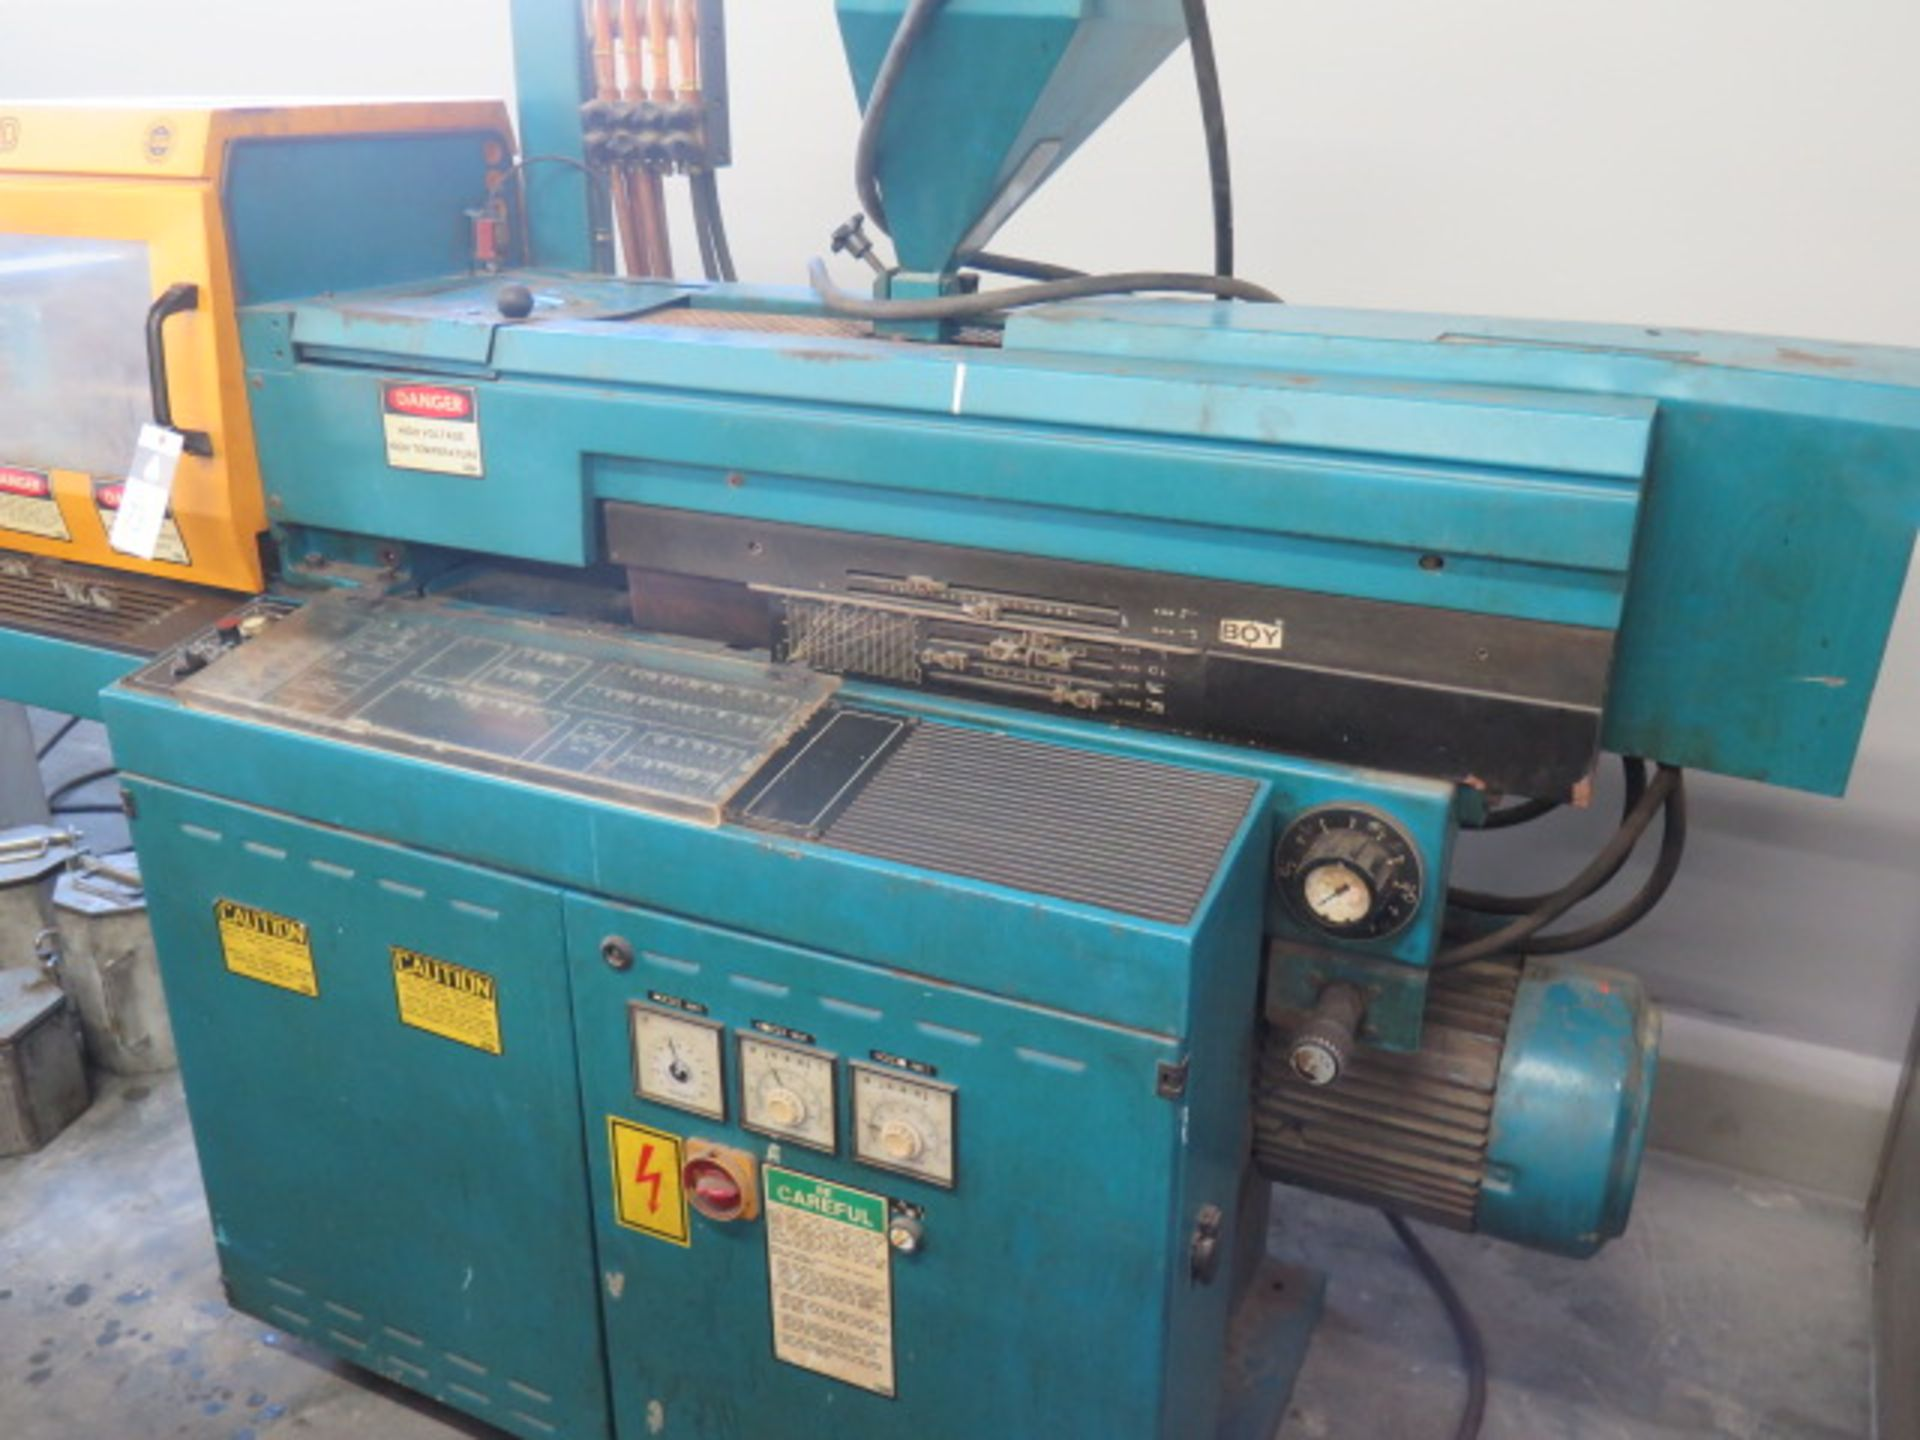 "Lot 73 - Boy 22D Plastic Injection Molding Machine s/n 29421 w/ Boy Controls, 8 ¾"" x 10"" Between Posts,"